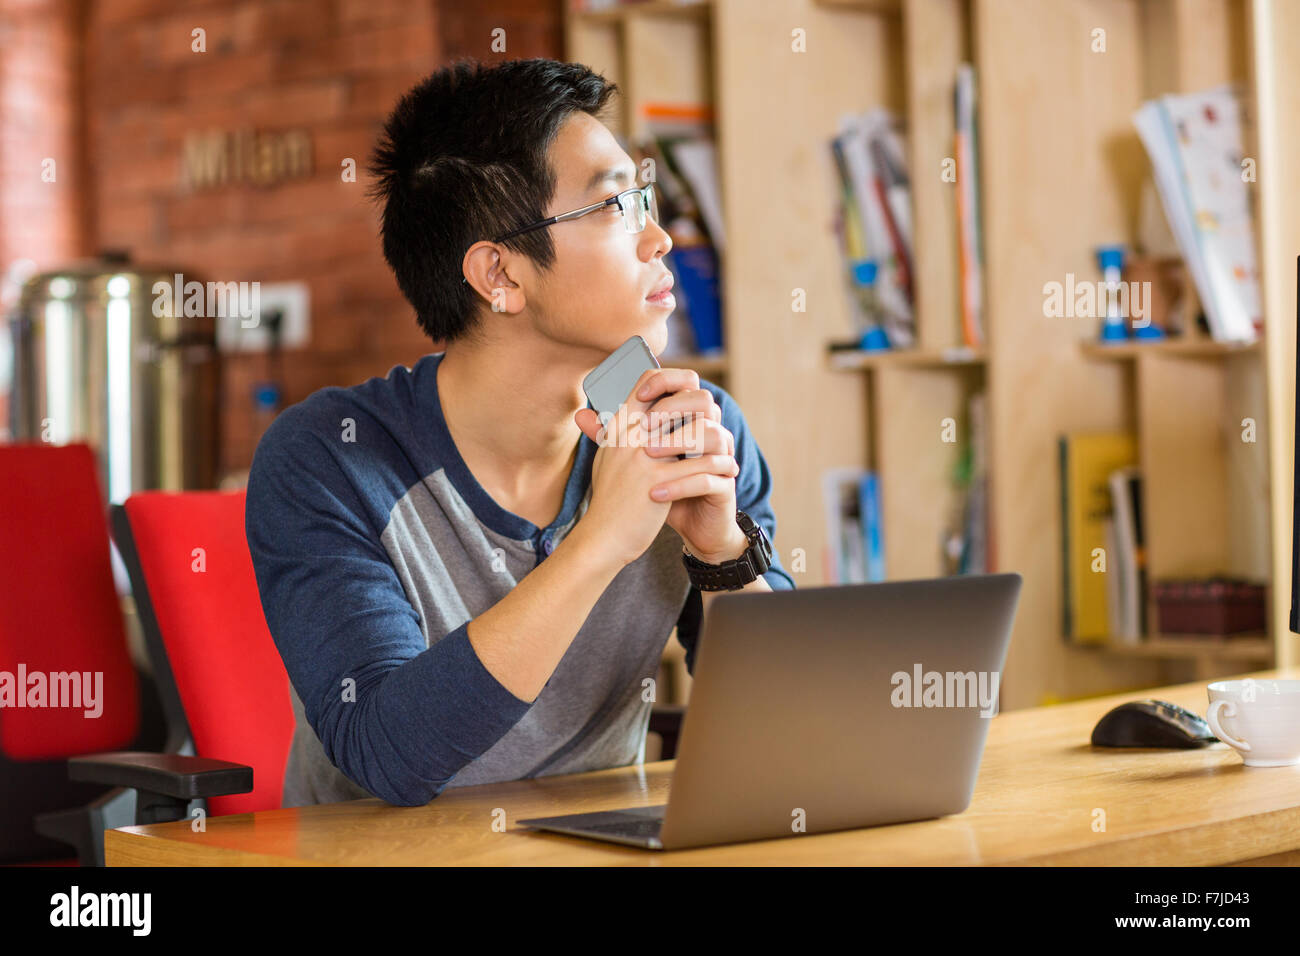 Thoughtful young asian man in glasses using laptop in cafe - Stock Image